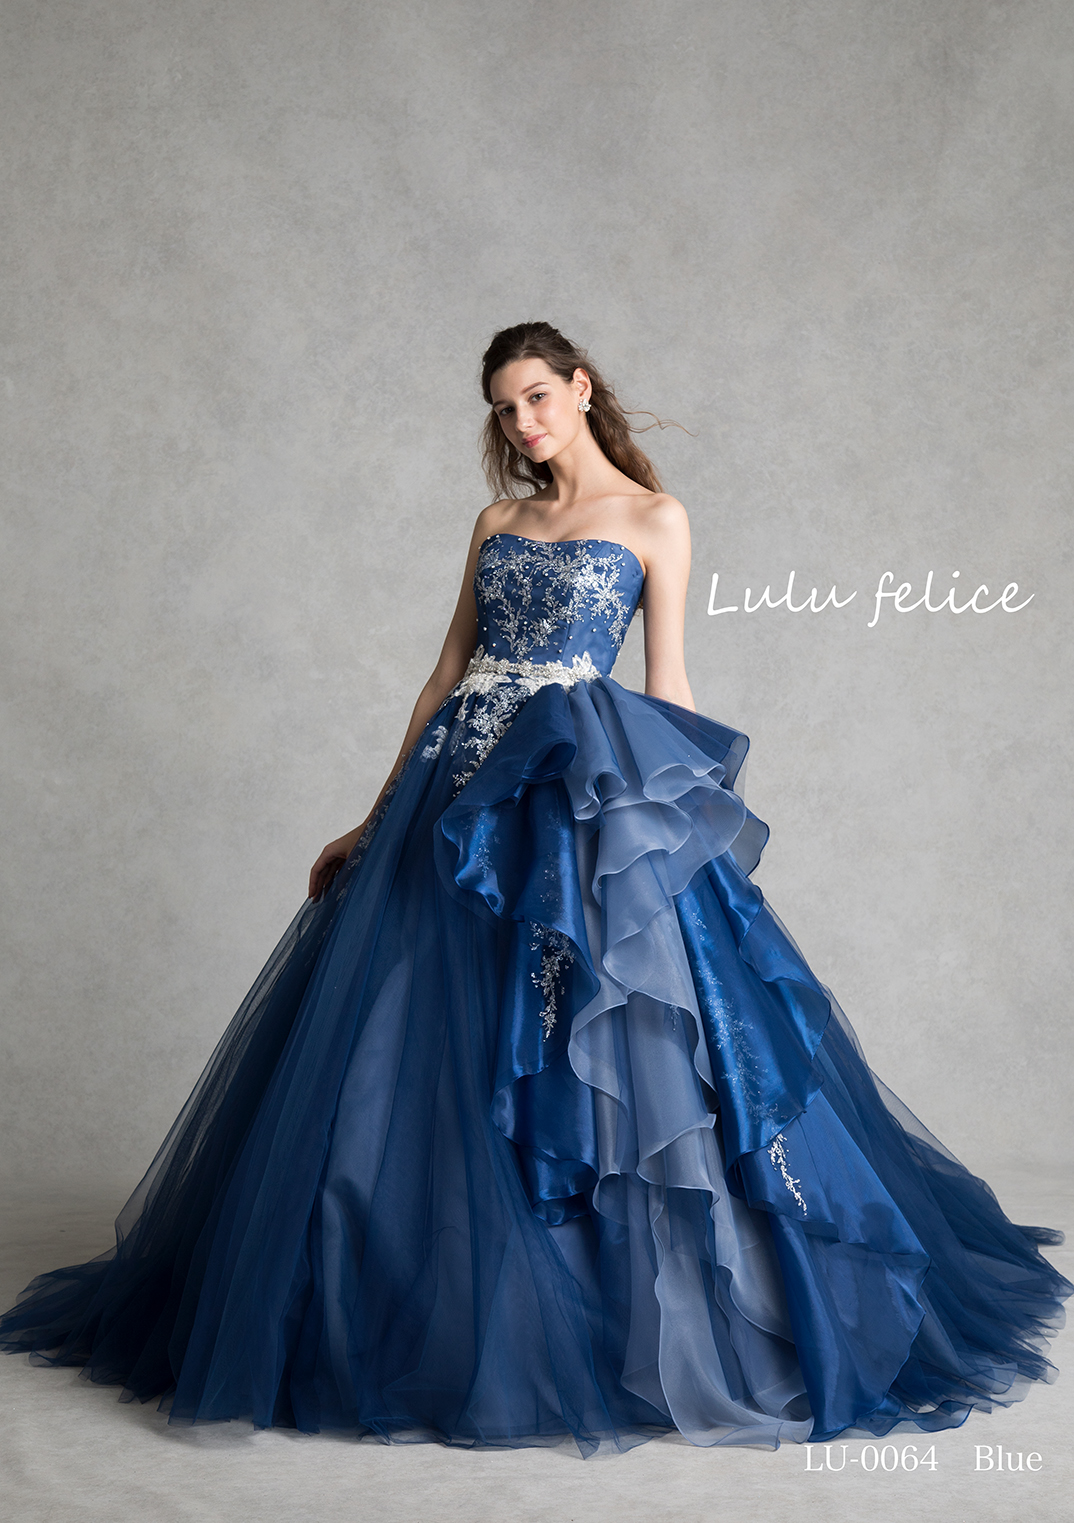 【Lulu felice】CD0359 blue LU0064